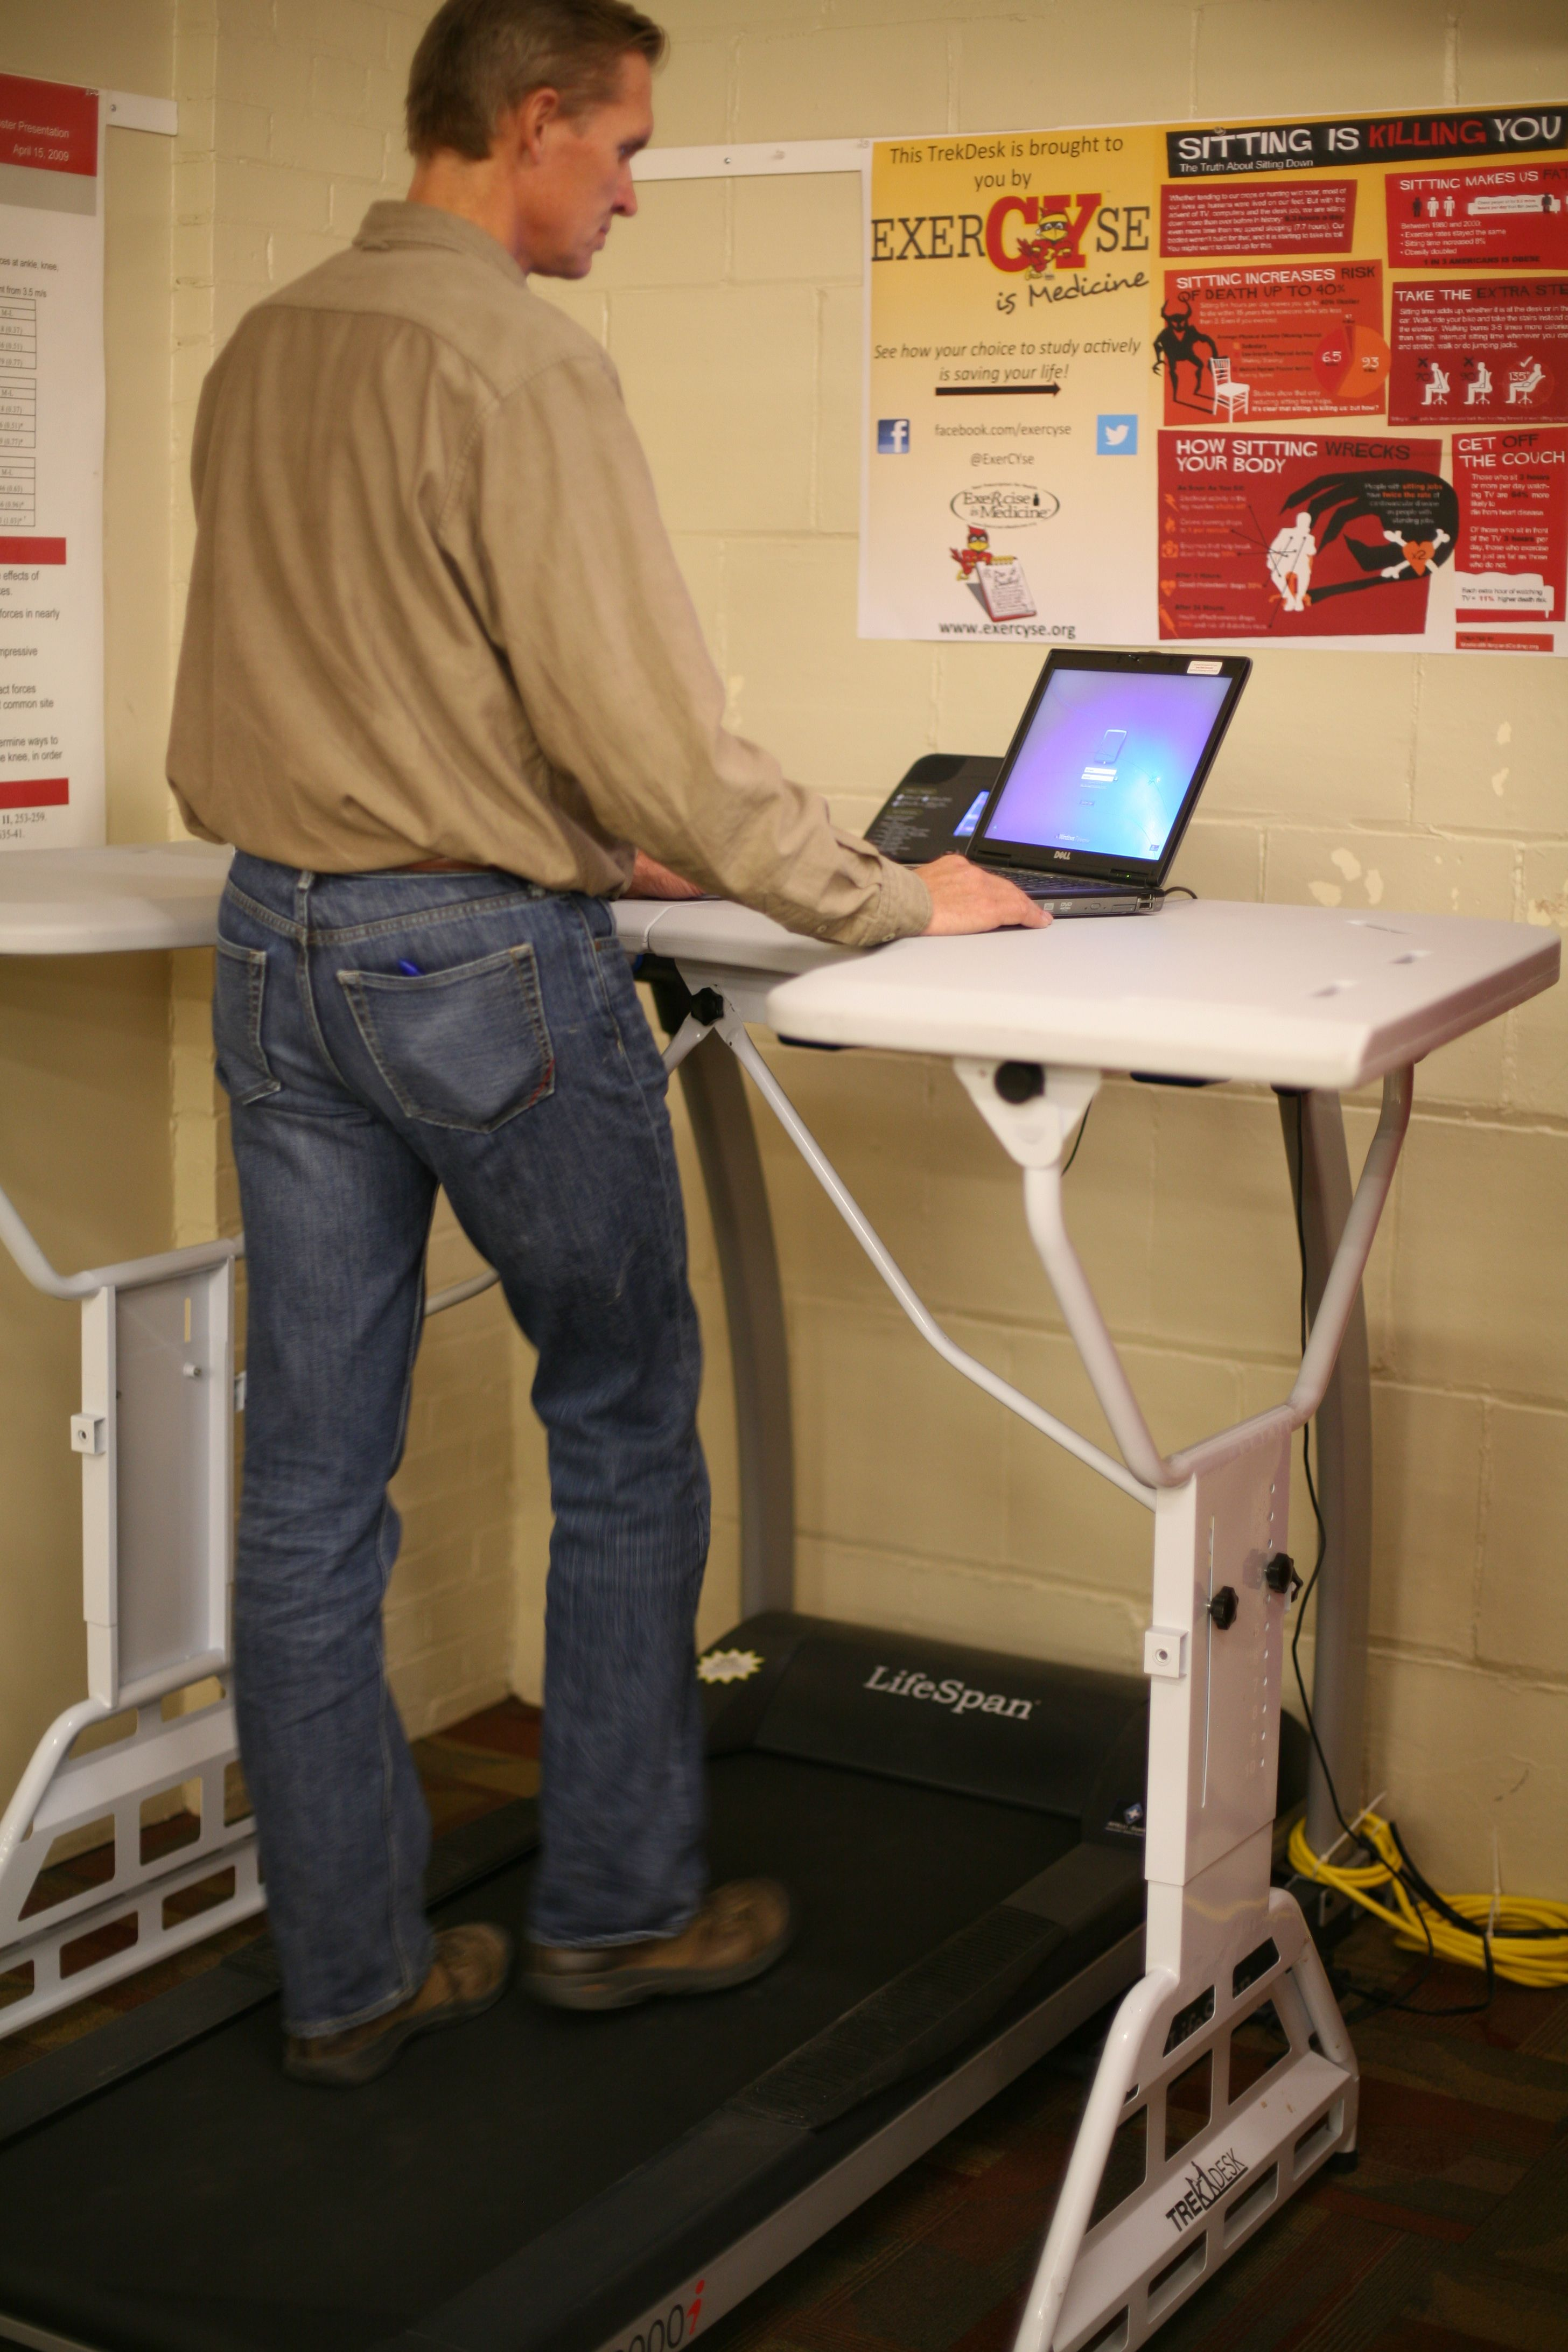 sunny sf desk health with automatic adjustment treadmill table product fitness under